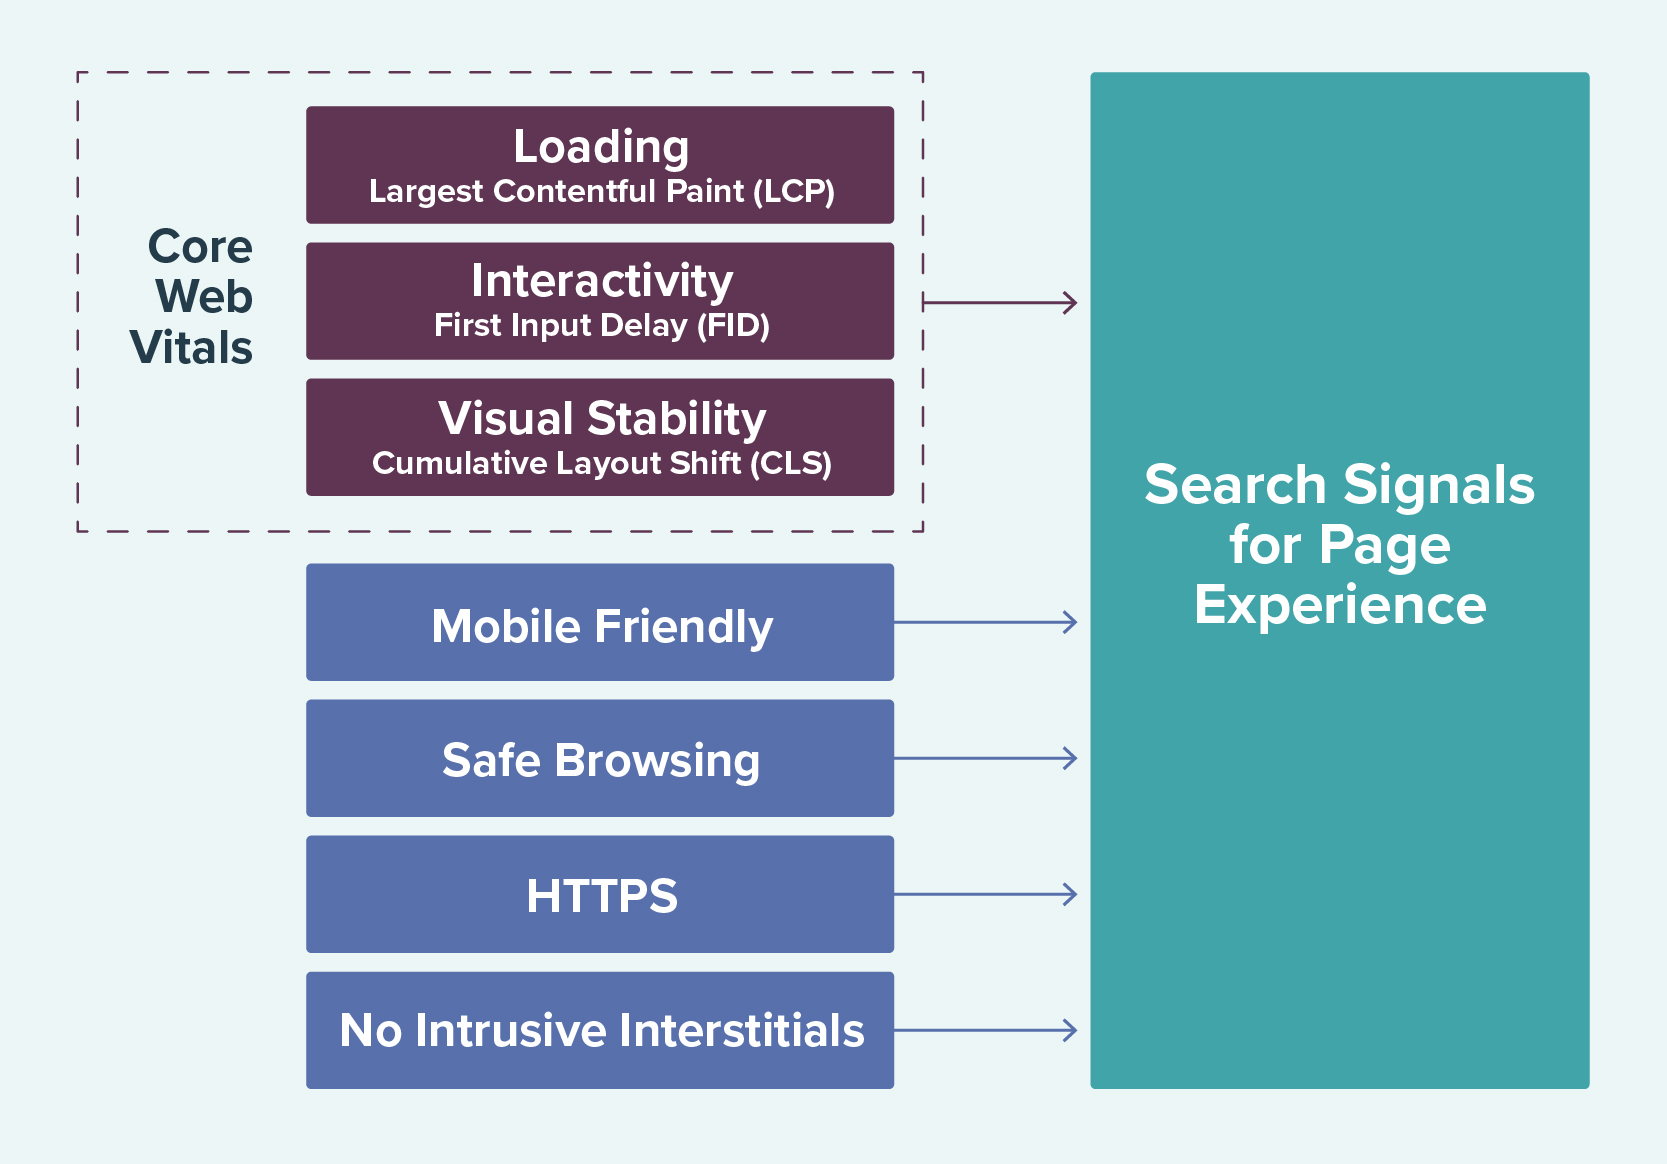 search signals for page experience breakdown